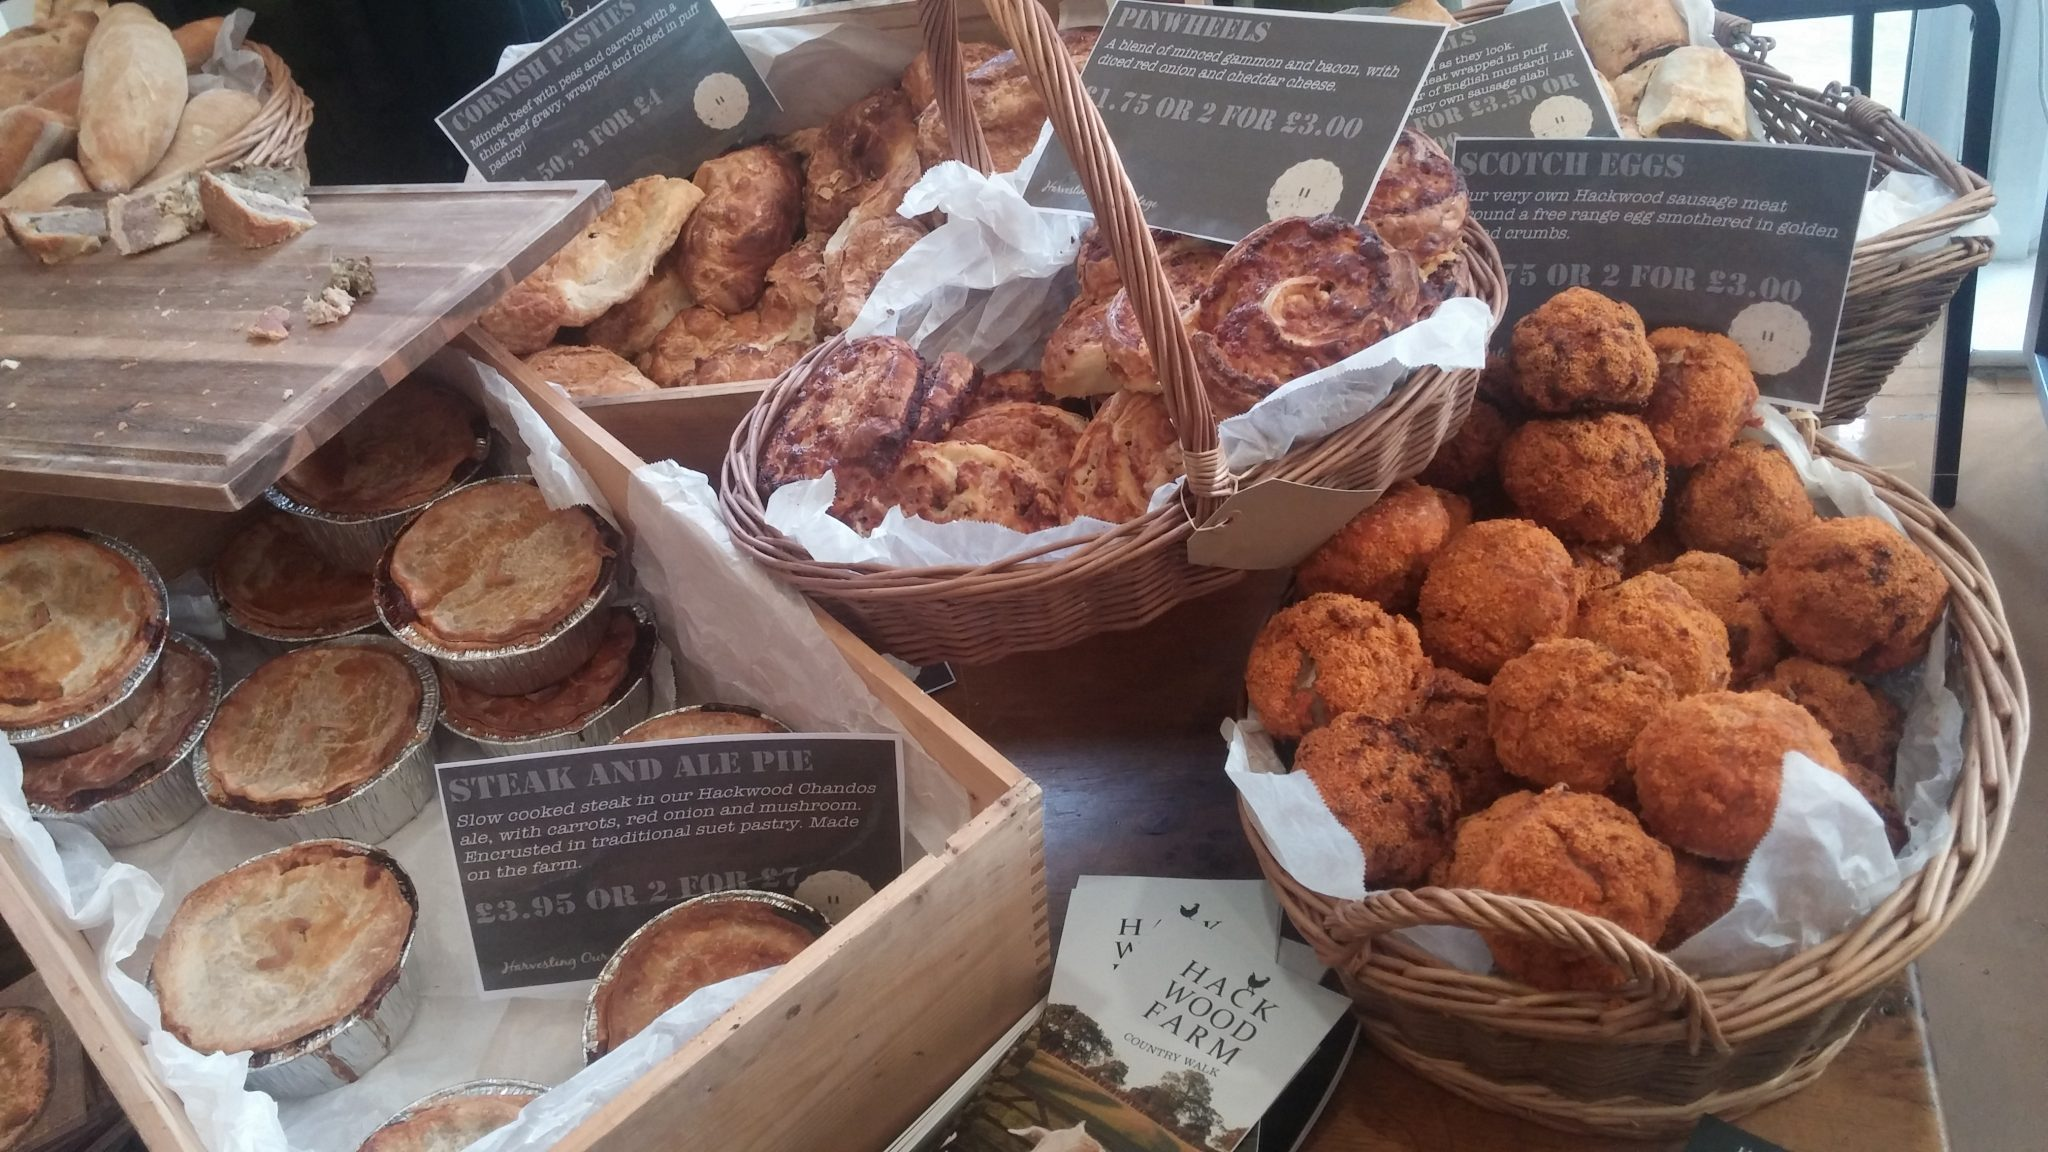 Breads, pies, pastries from Hackwood Farm, Derby